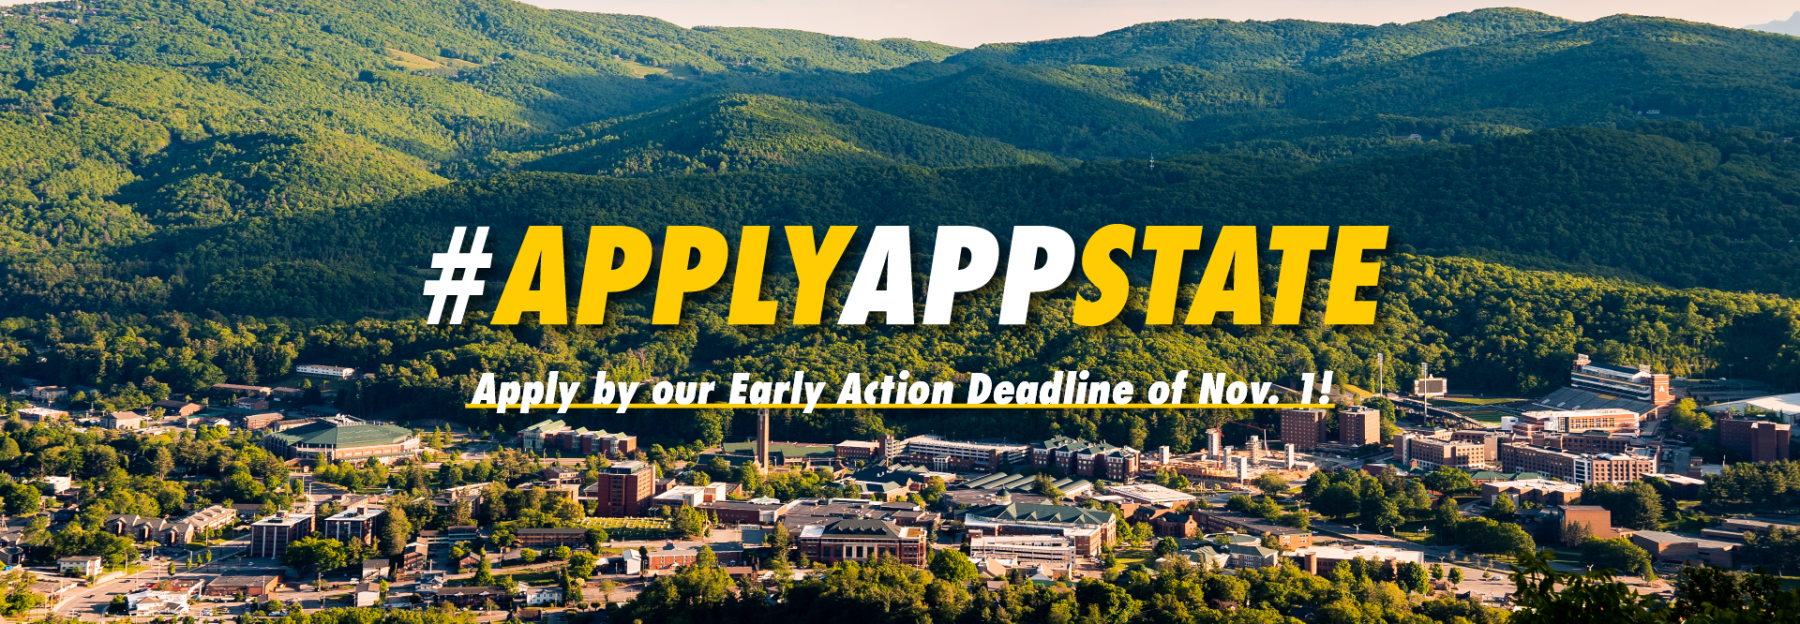 Campus Shot of App State. #ApplyAppState Apply by our Early Action Deadline of Nov. 1!